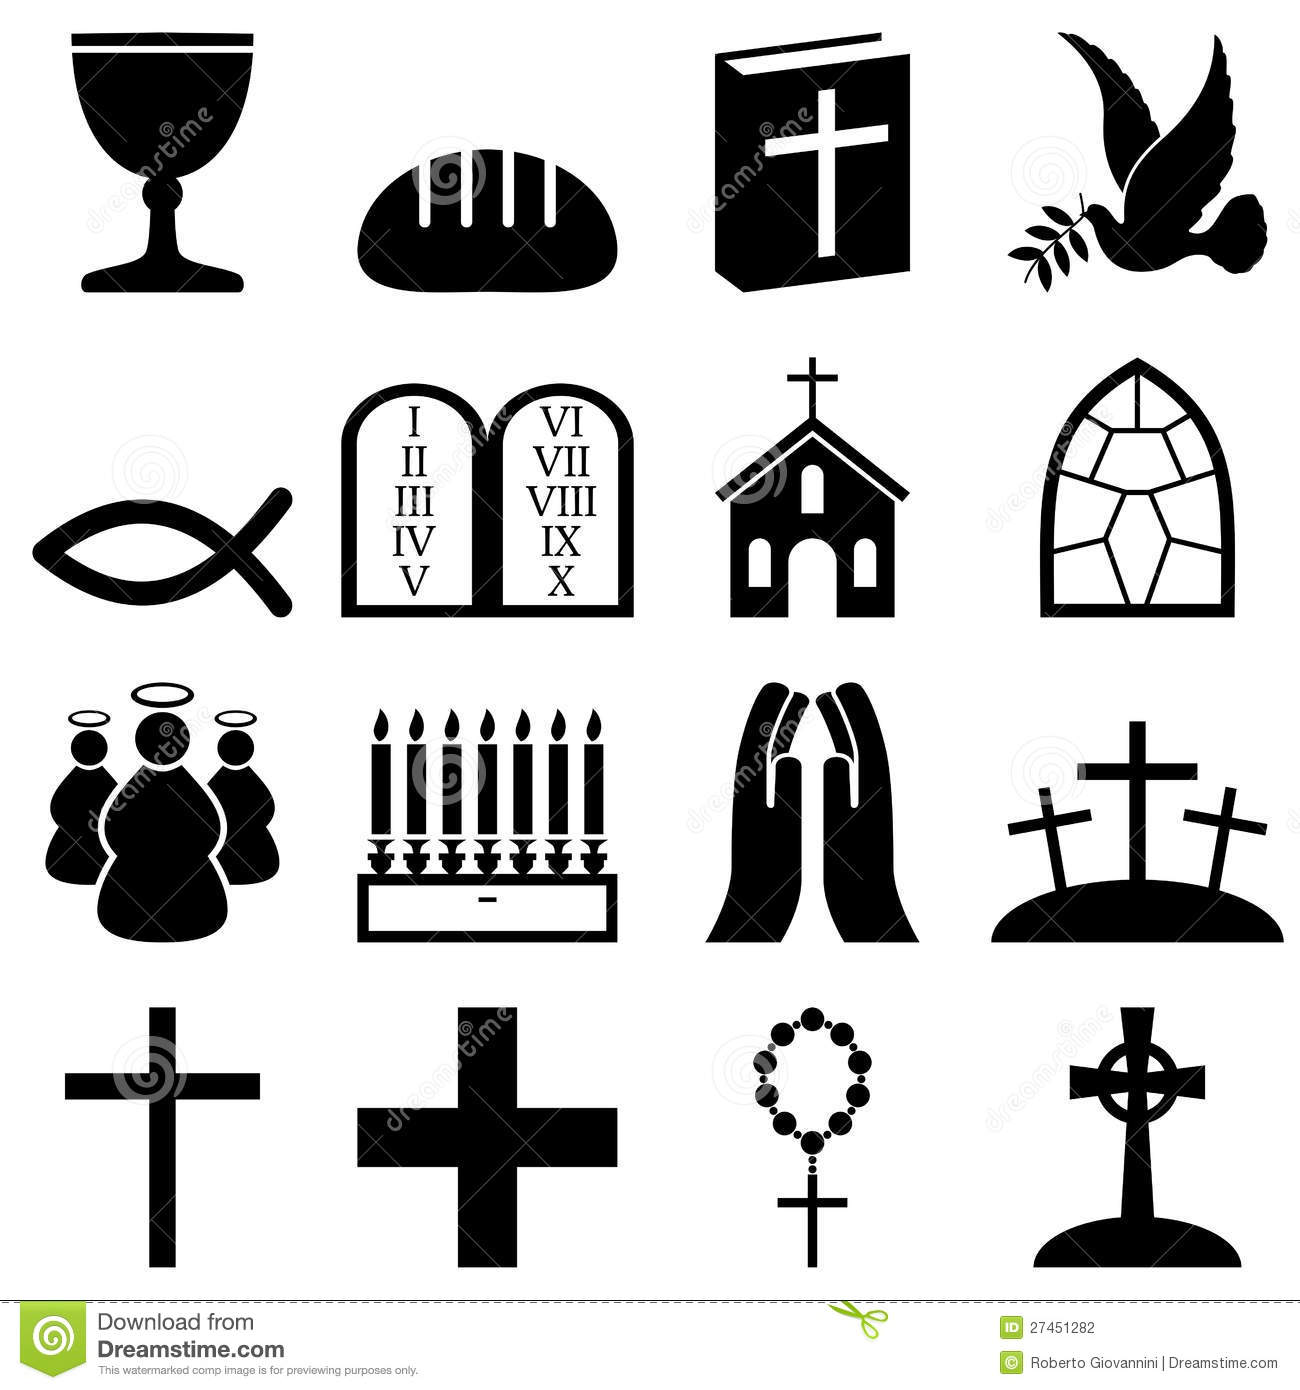 Christianity Black White Icons Illustration 27451282 Megapixl